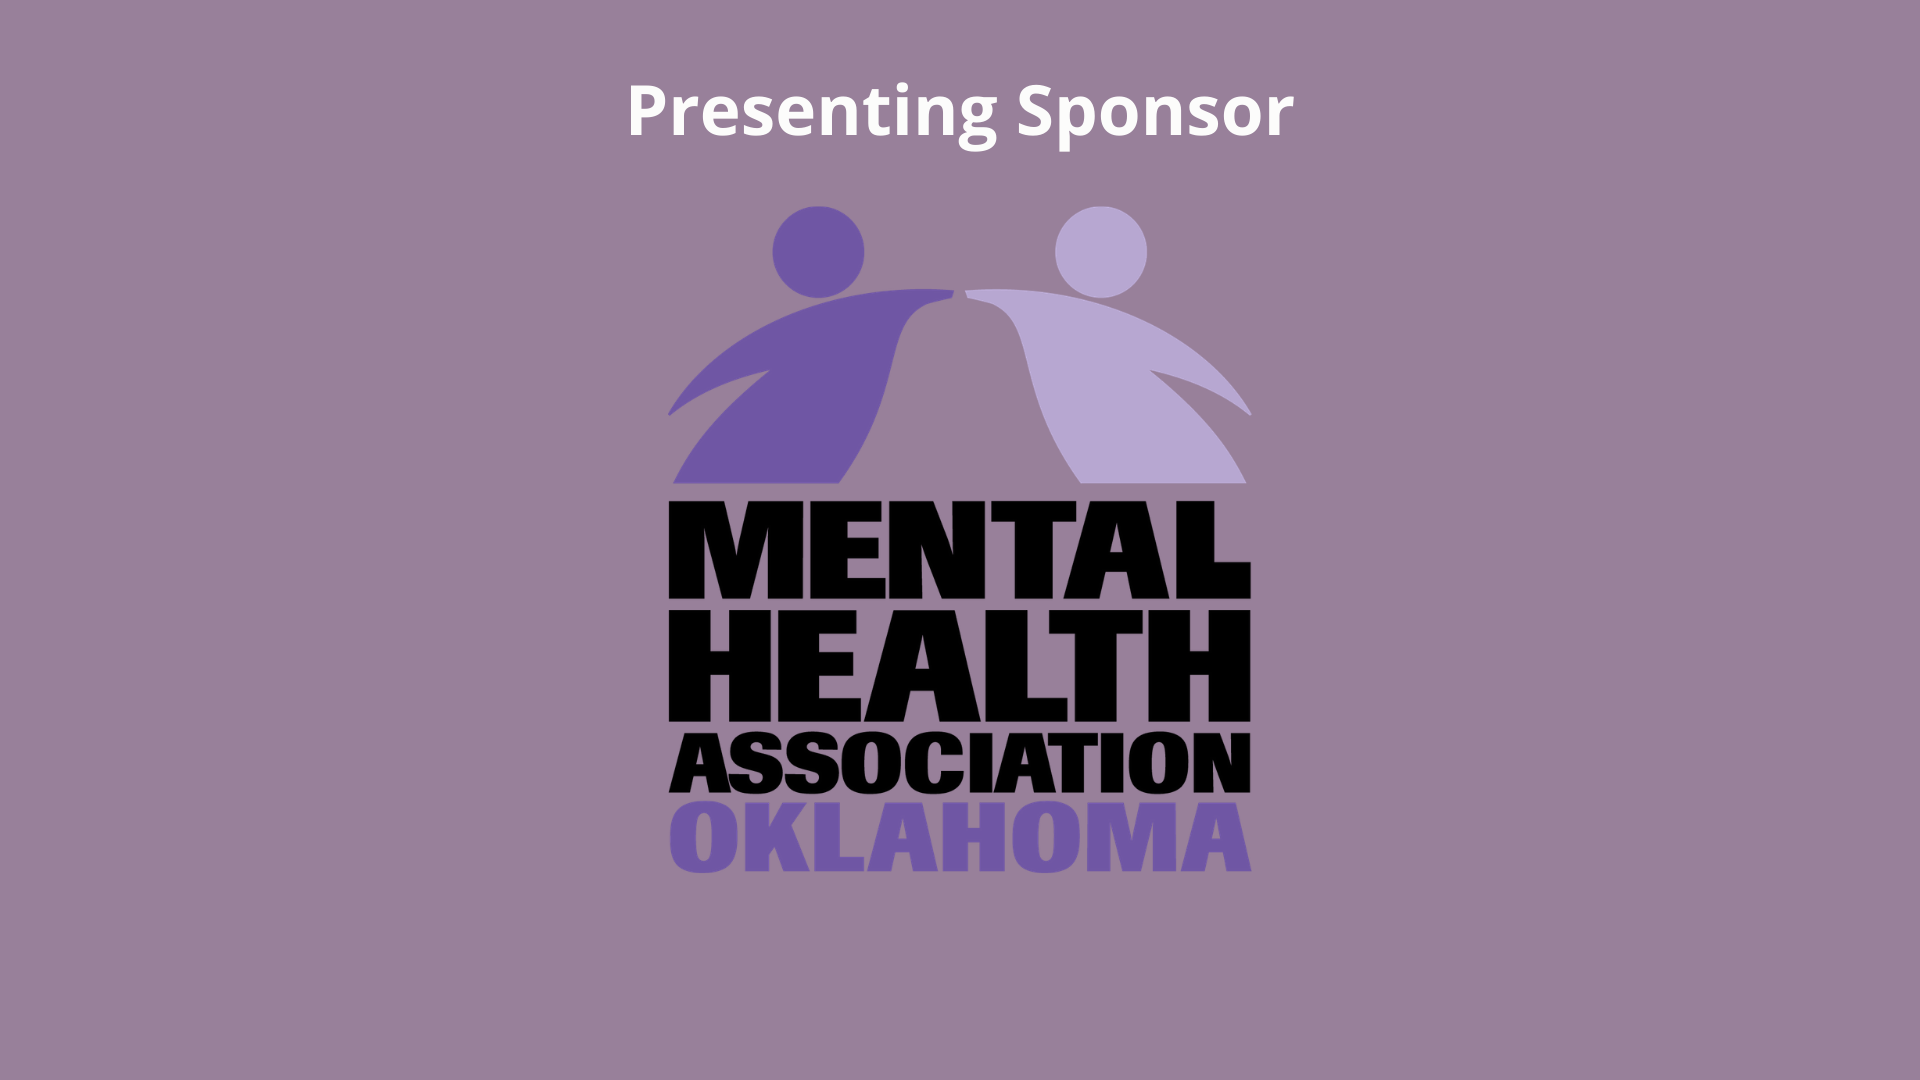 Mental Health Association of Oklahoma